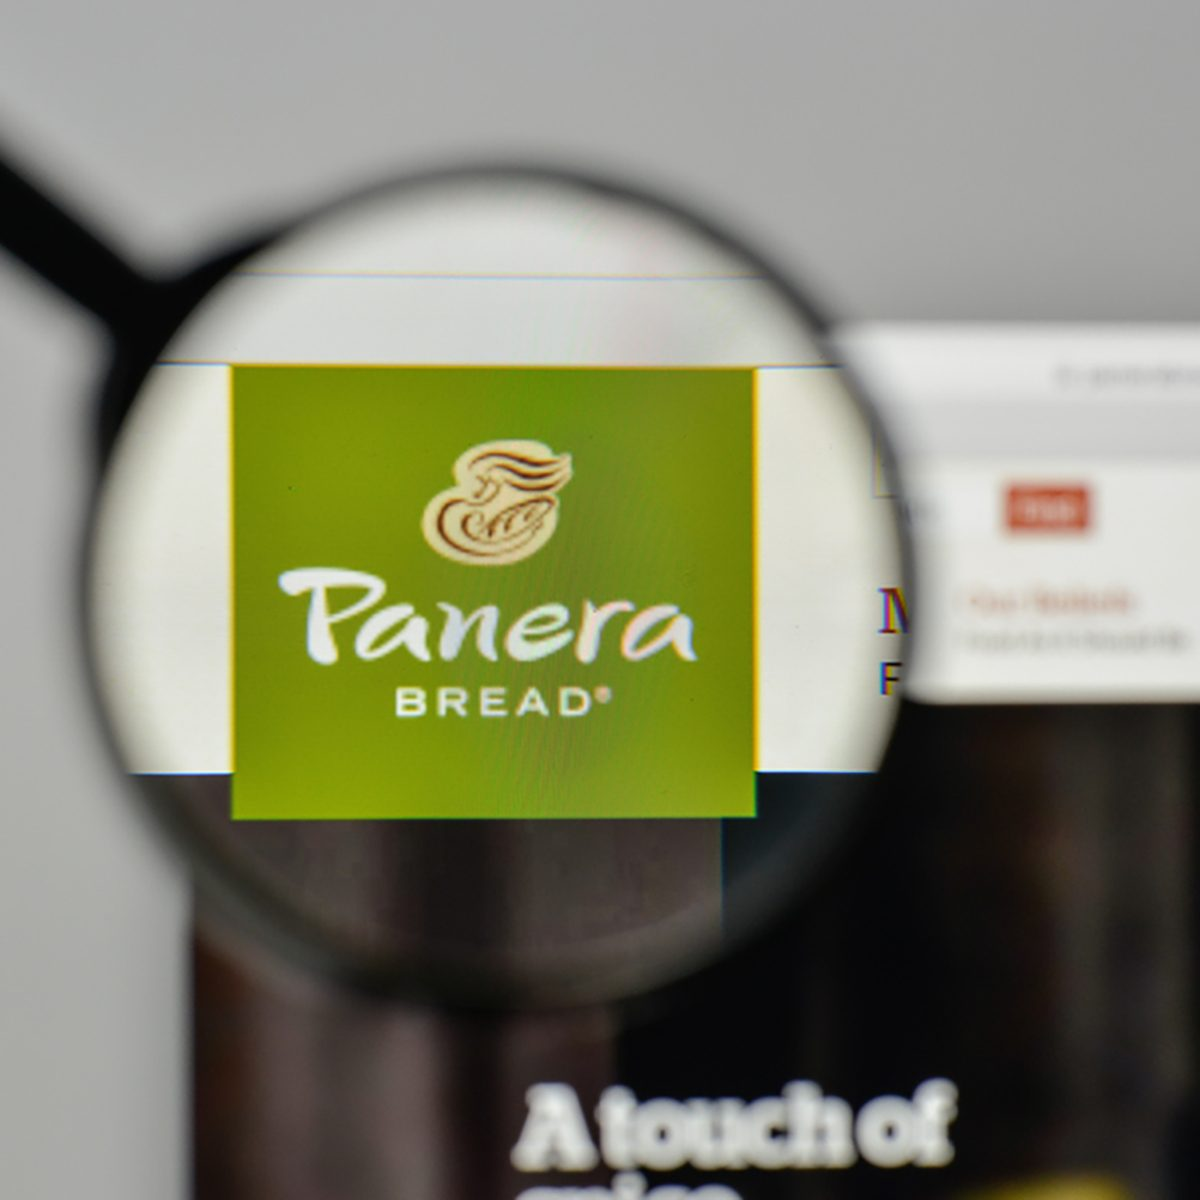 Panera Bread logo on the website homepage